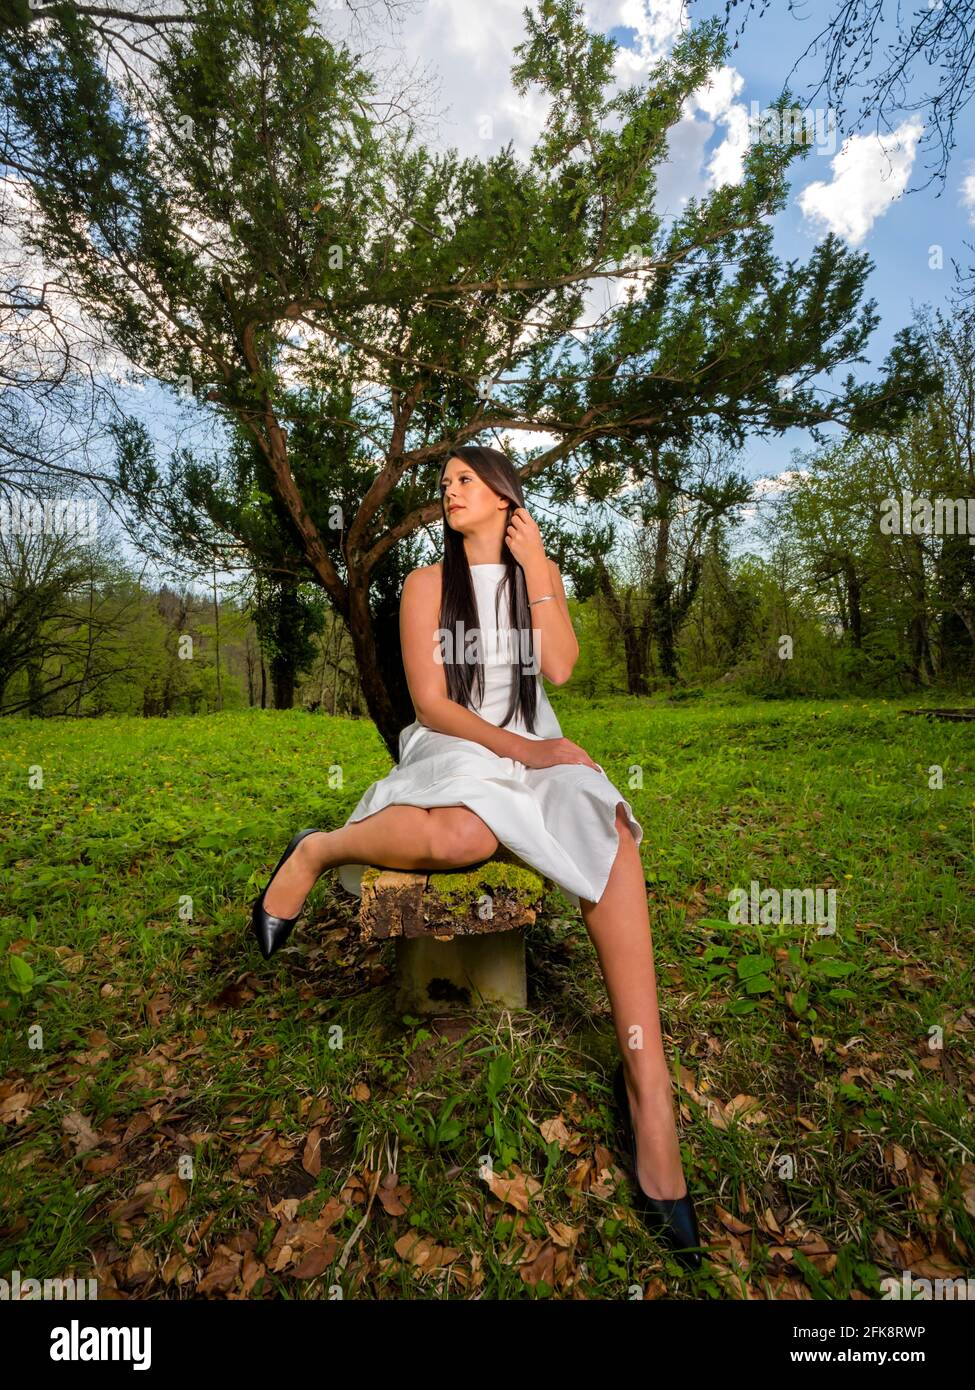 Young woman sitting on wooden bench awkward in park looking aside sad away wearing White dress legs high-heels Stock Photo